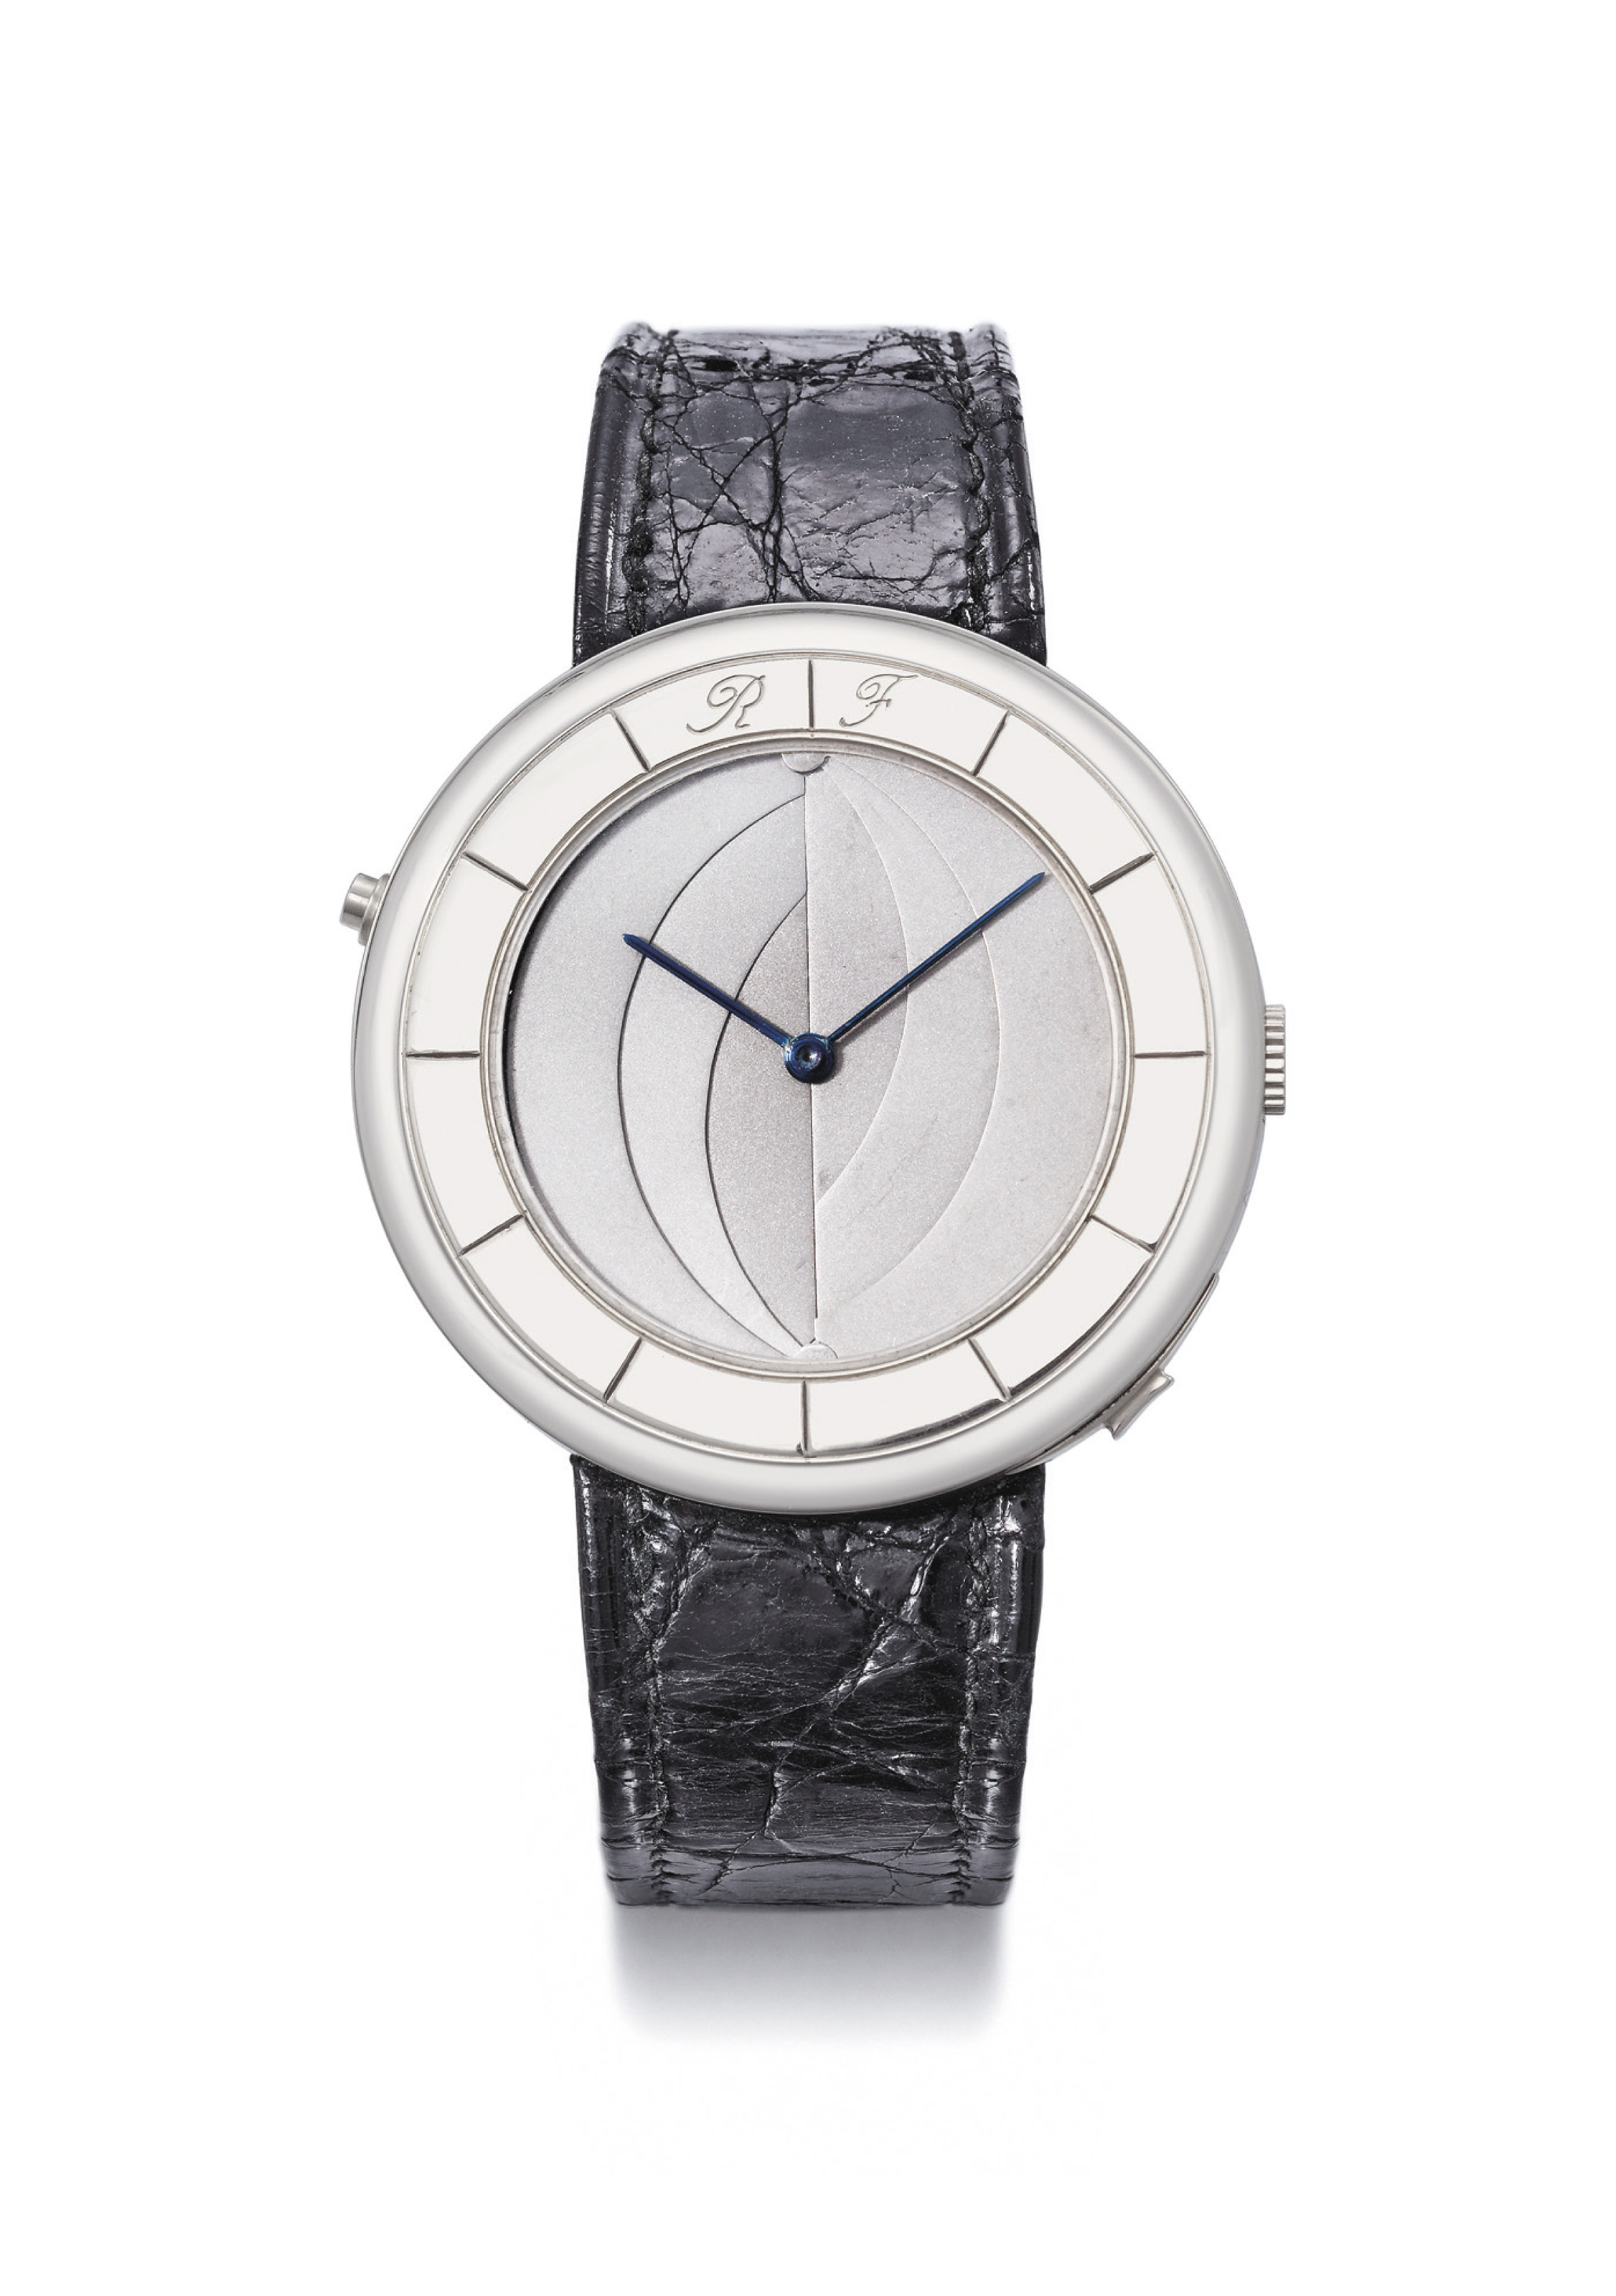 FALCONE. A FINE AND POSSIBLY UNIQUE 18K WHITE GOLD WRISTWATCH WITH CONCEALED EROTIC ENAMEL DIAL